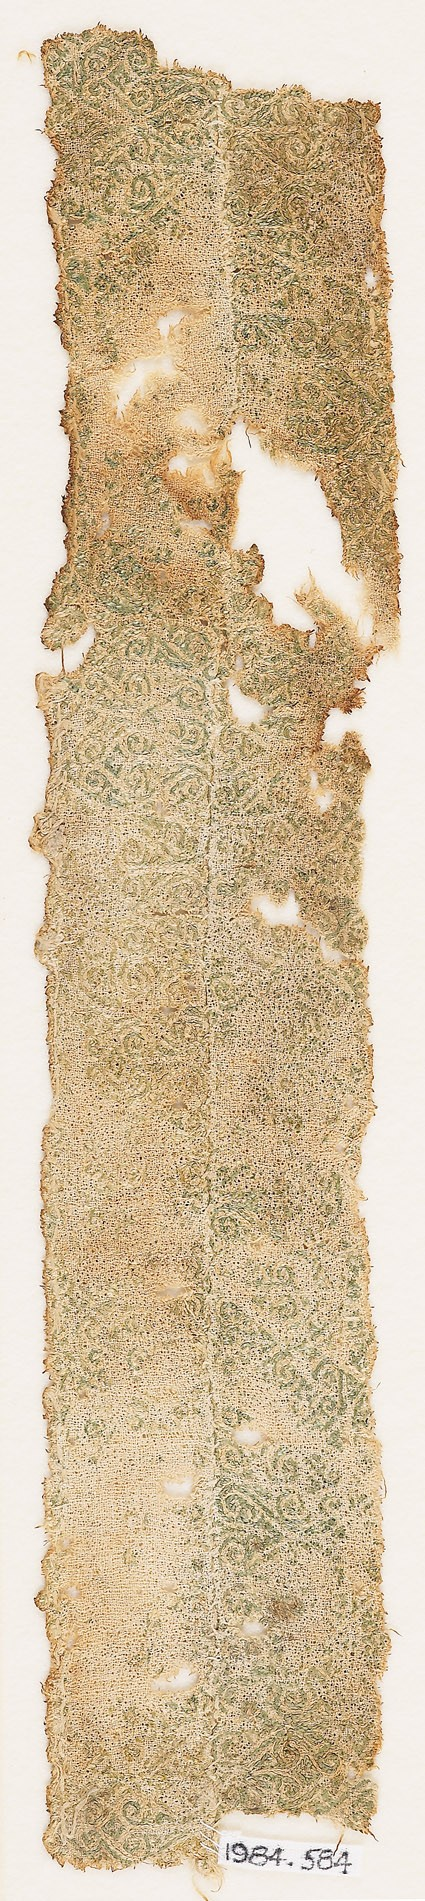 Textile fragment with interlacing spirals and hearts